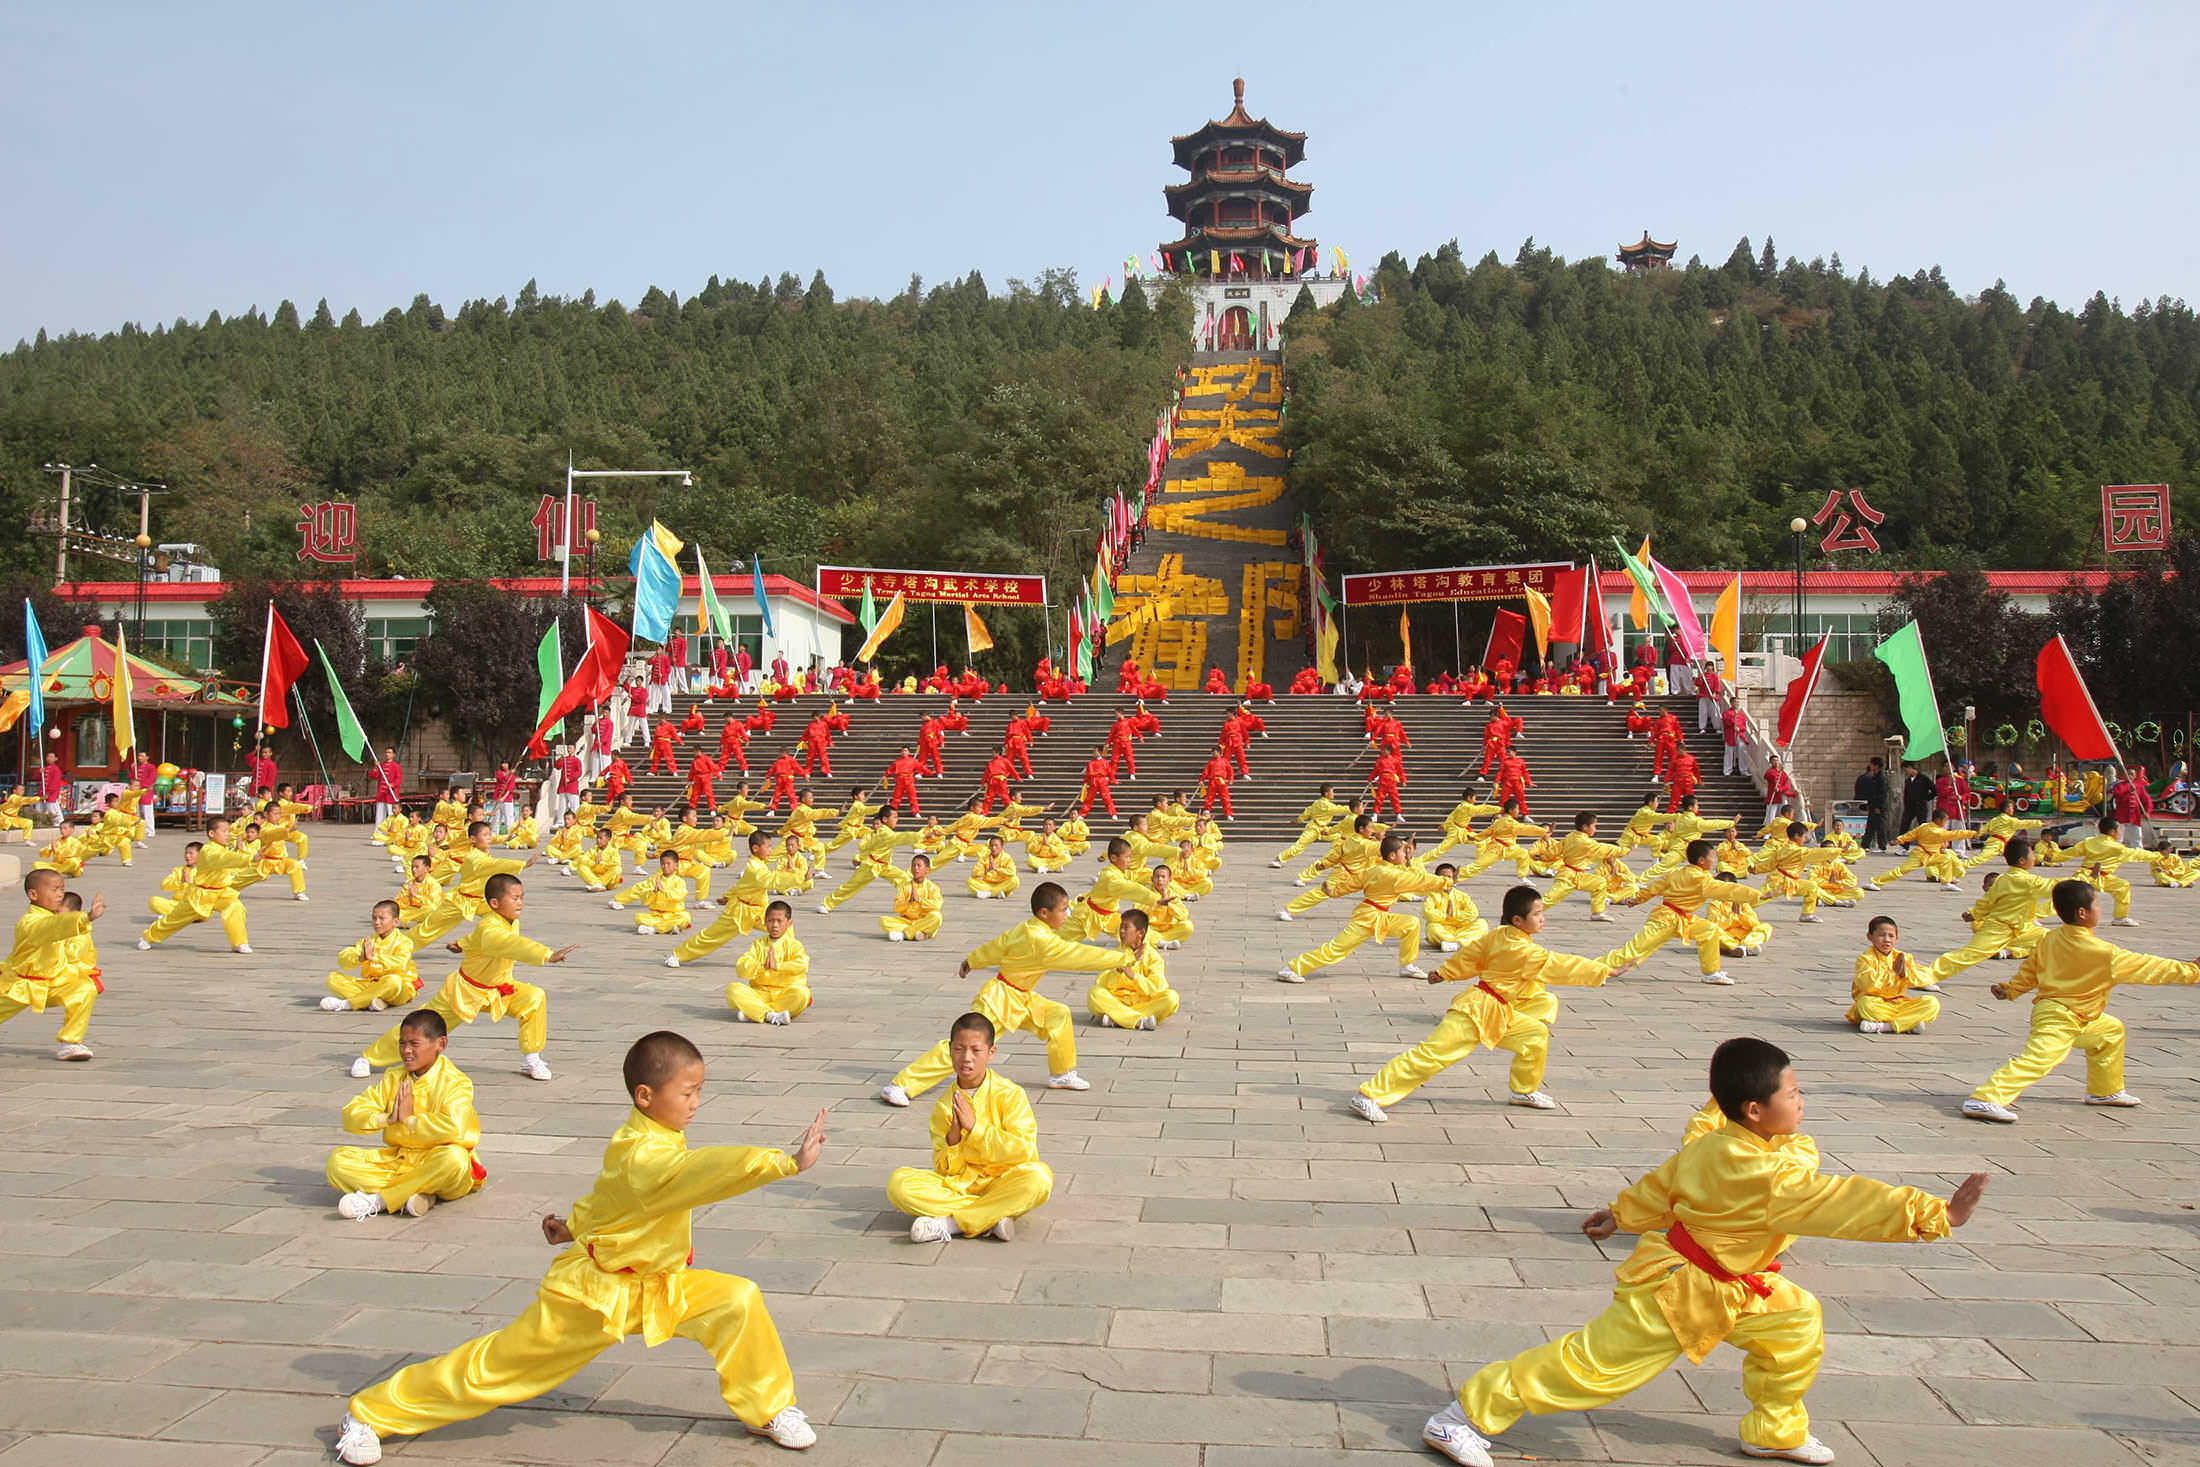 Kung fu students practicing in Shaolin